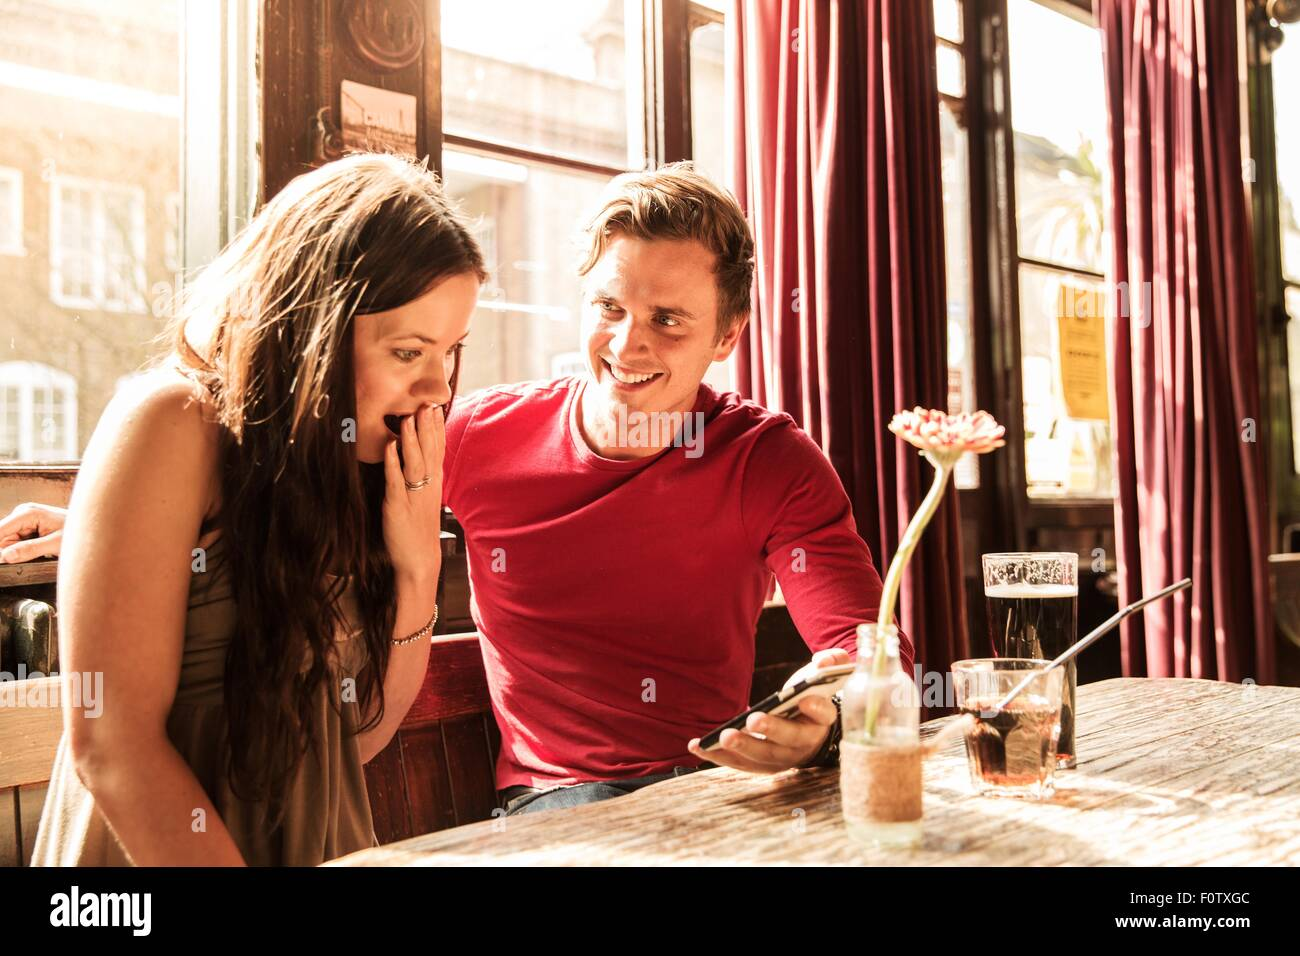 Couple using smartphone together, hand covering mouth - Stock Image